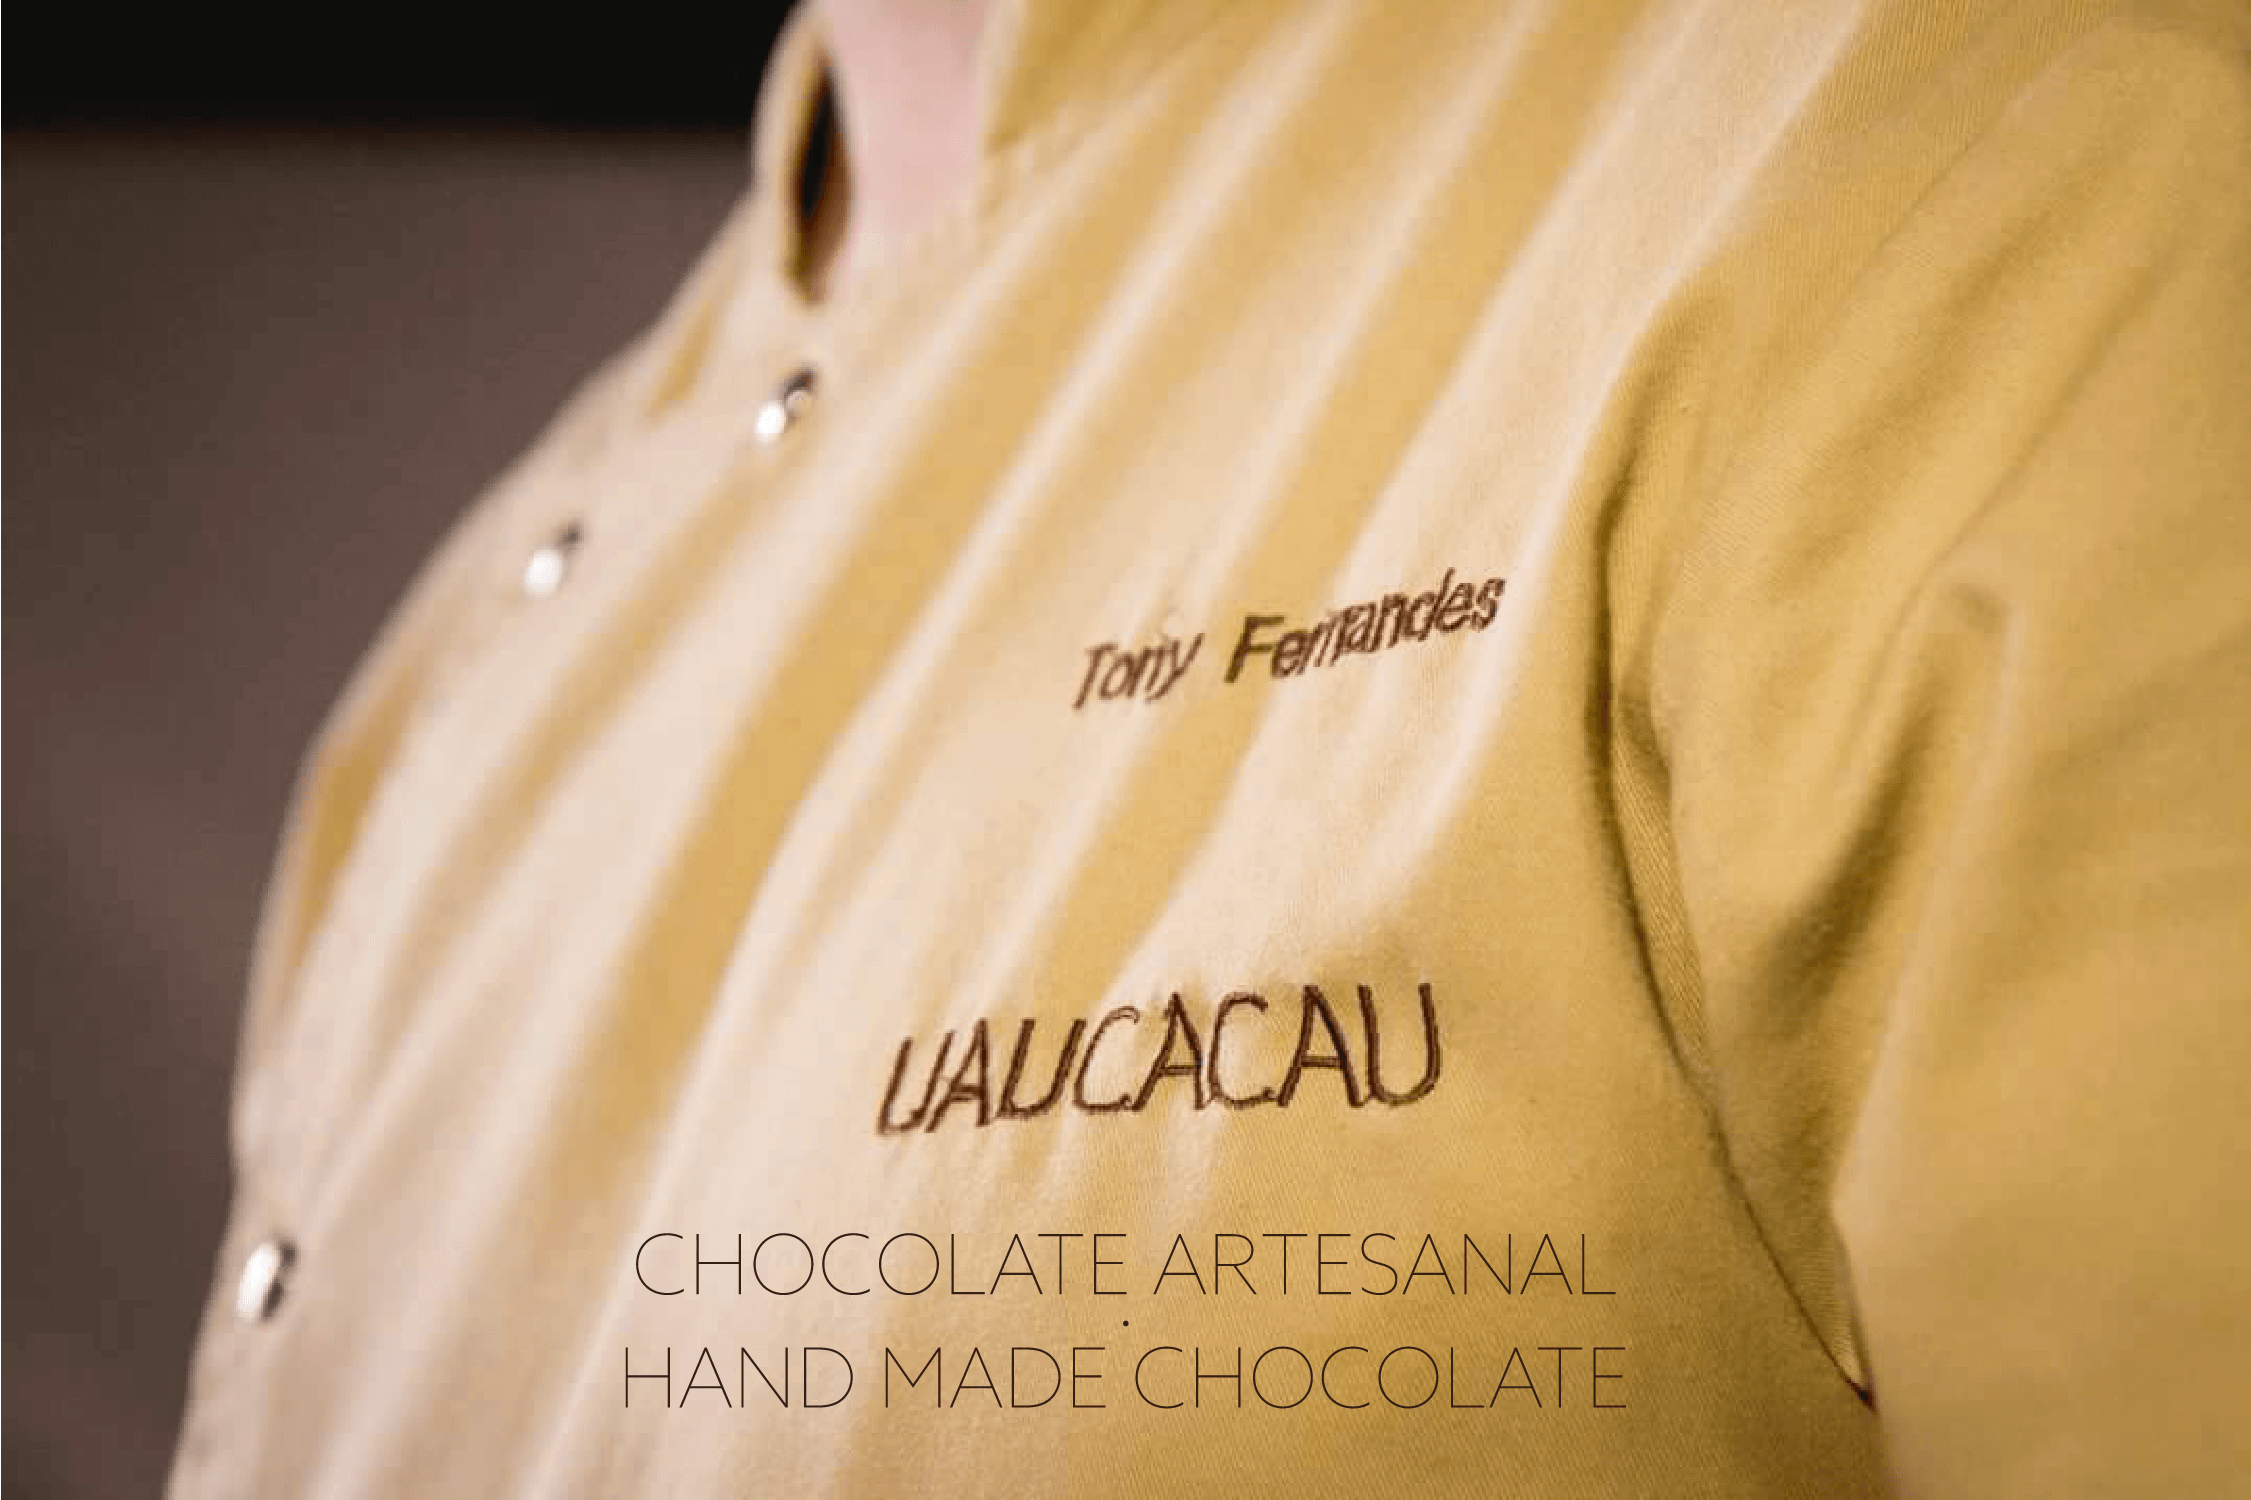 UAUCACAU by Tony Fernandes - Chocolate Artesanal - Handmade Chocolate